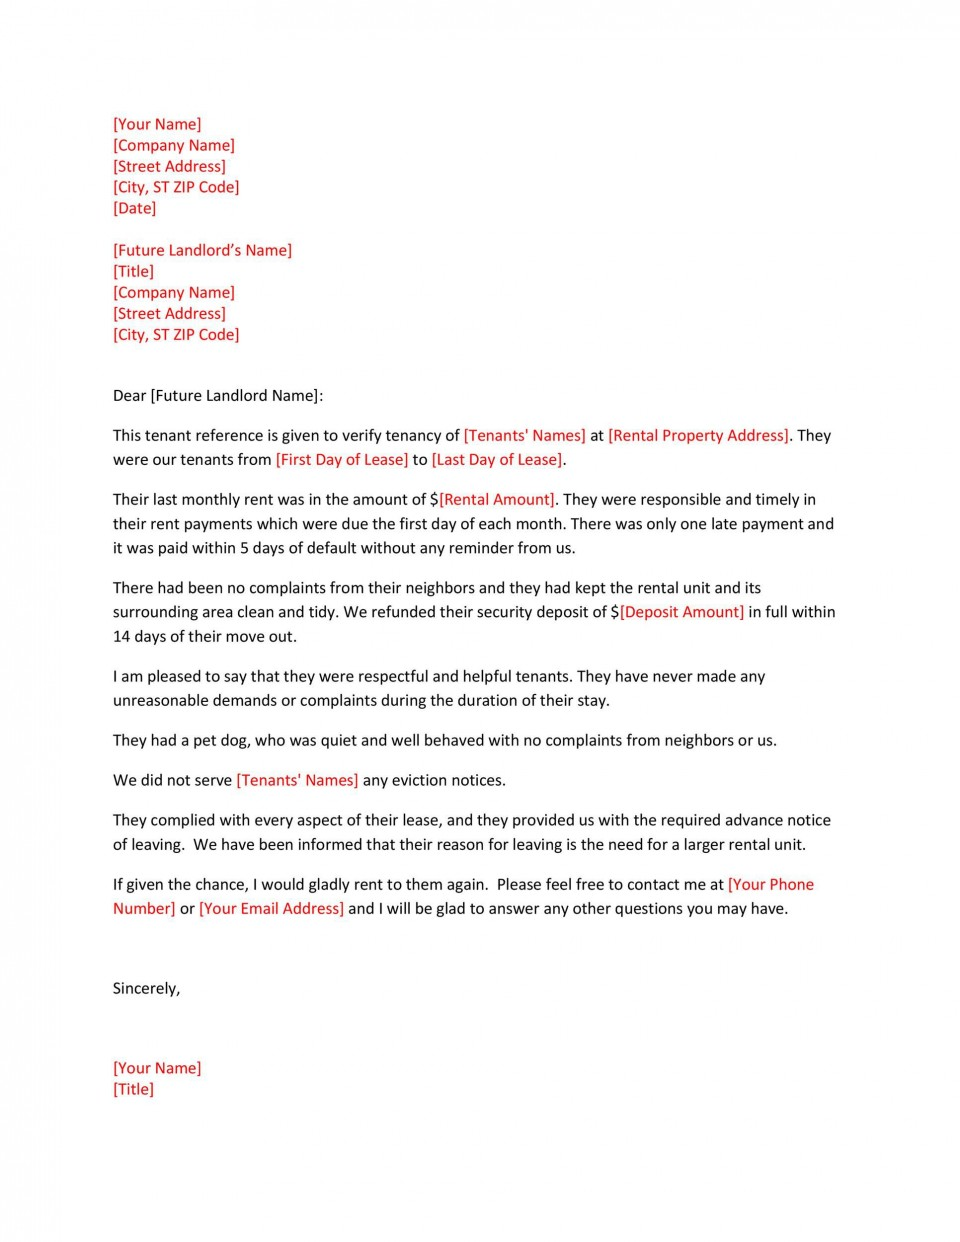 002 Unusual Free Reference Letter Template For Landlord High Def  Rental960